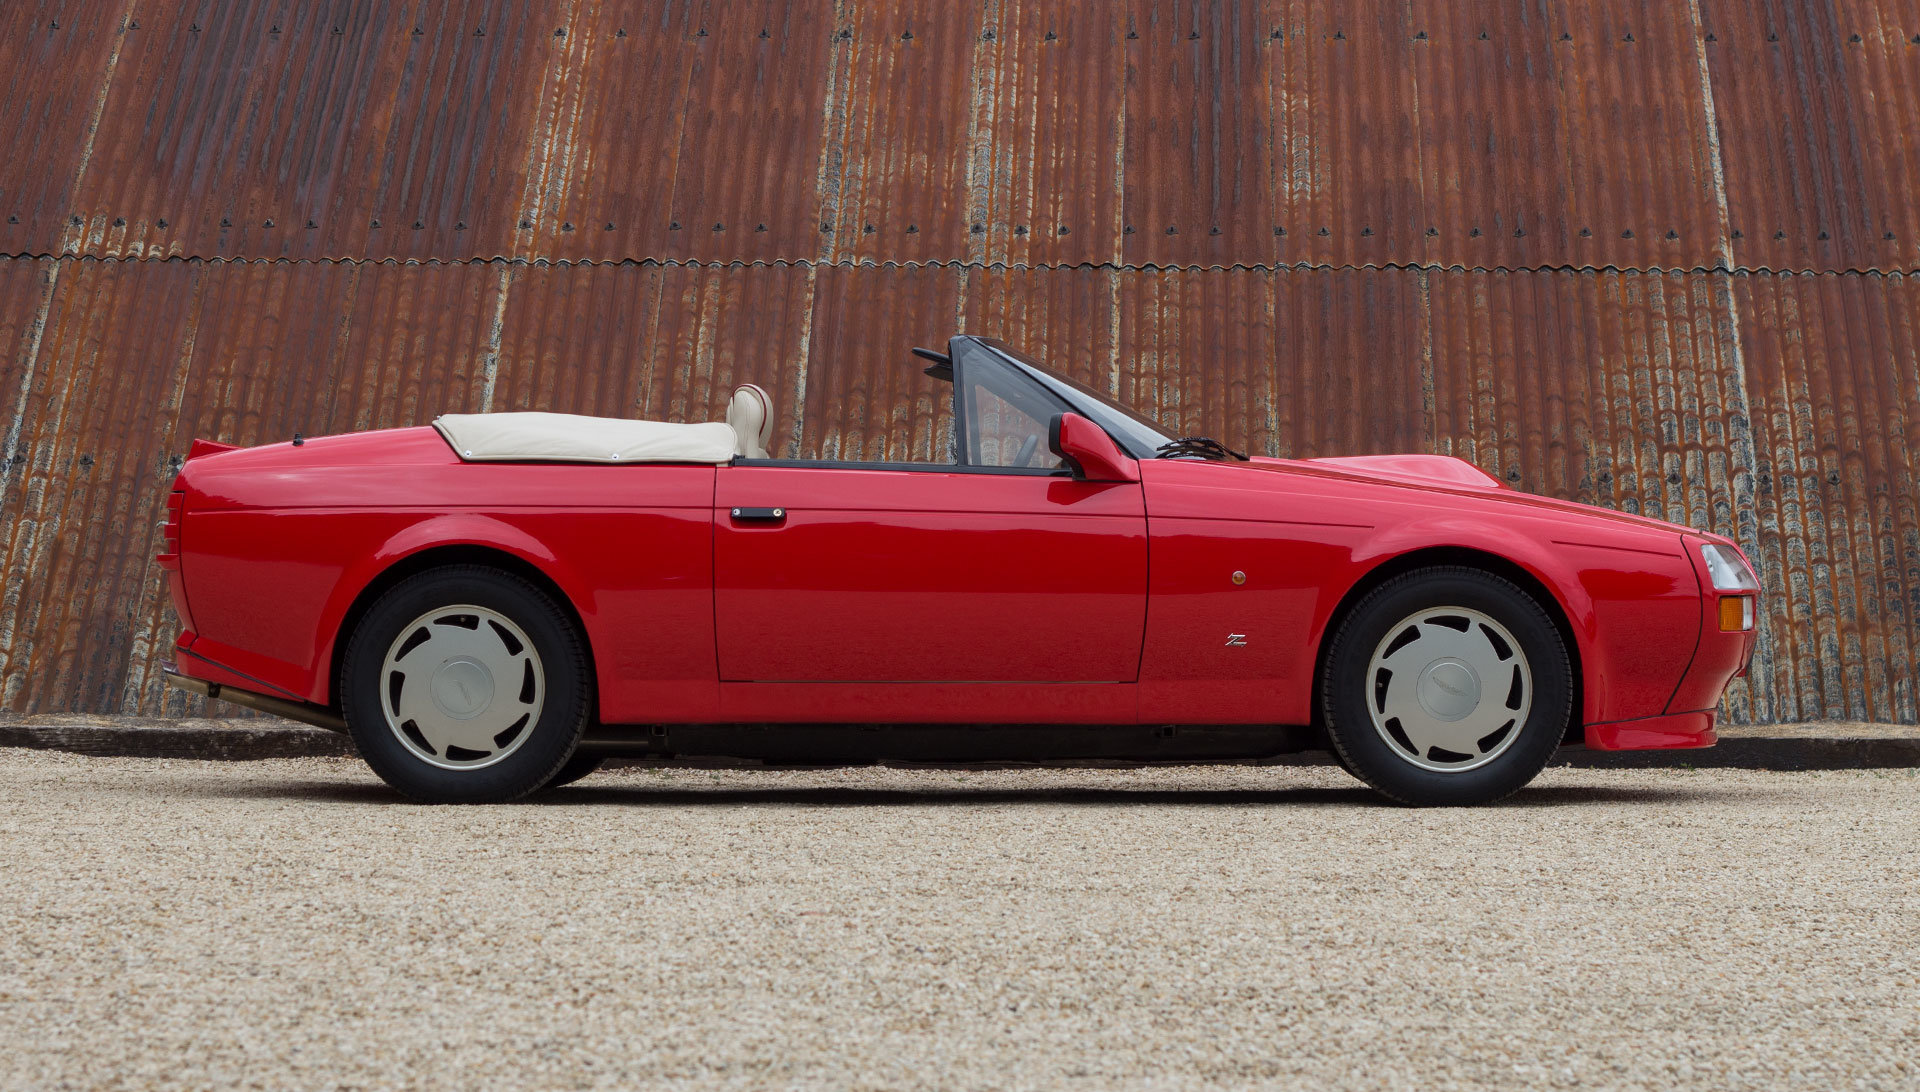 1989 Aston Martin V8 Vantage Volante Zagato 6.3 Litre For Sale (picture 7 of 24)